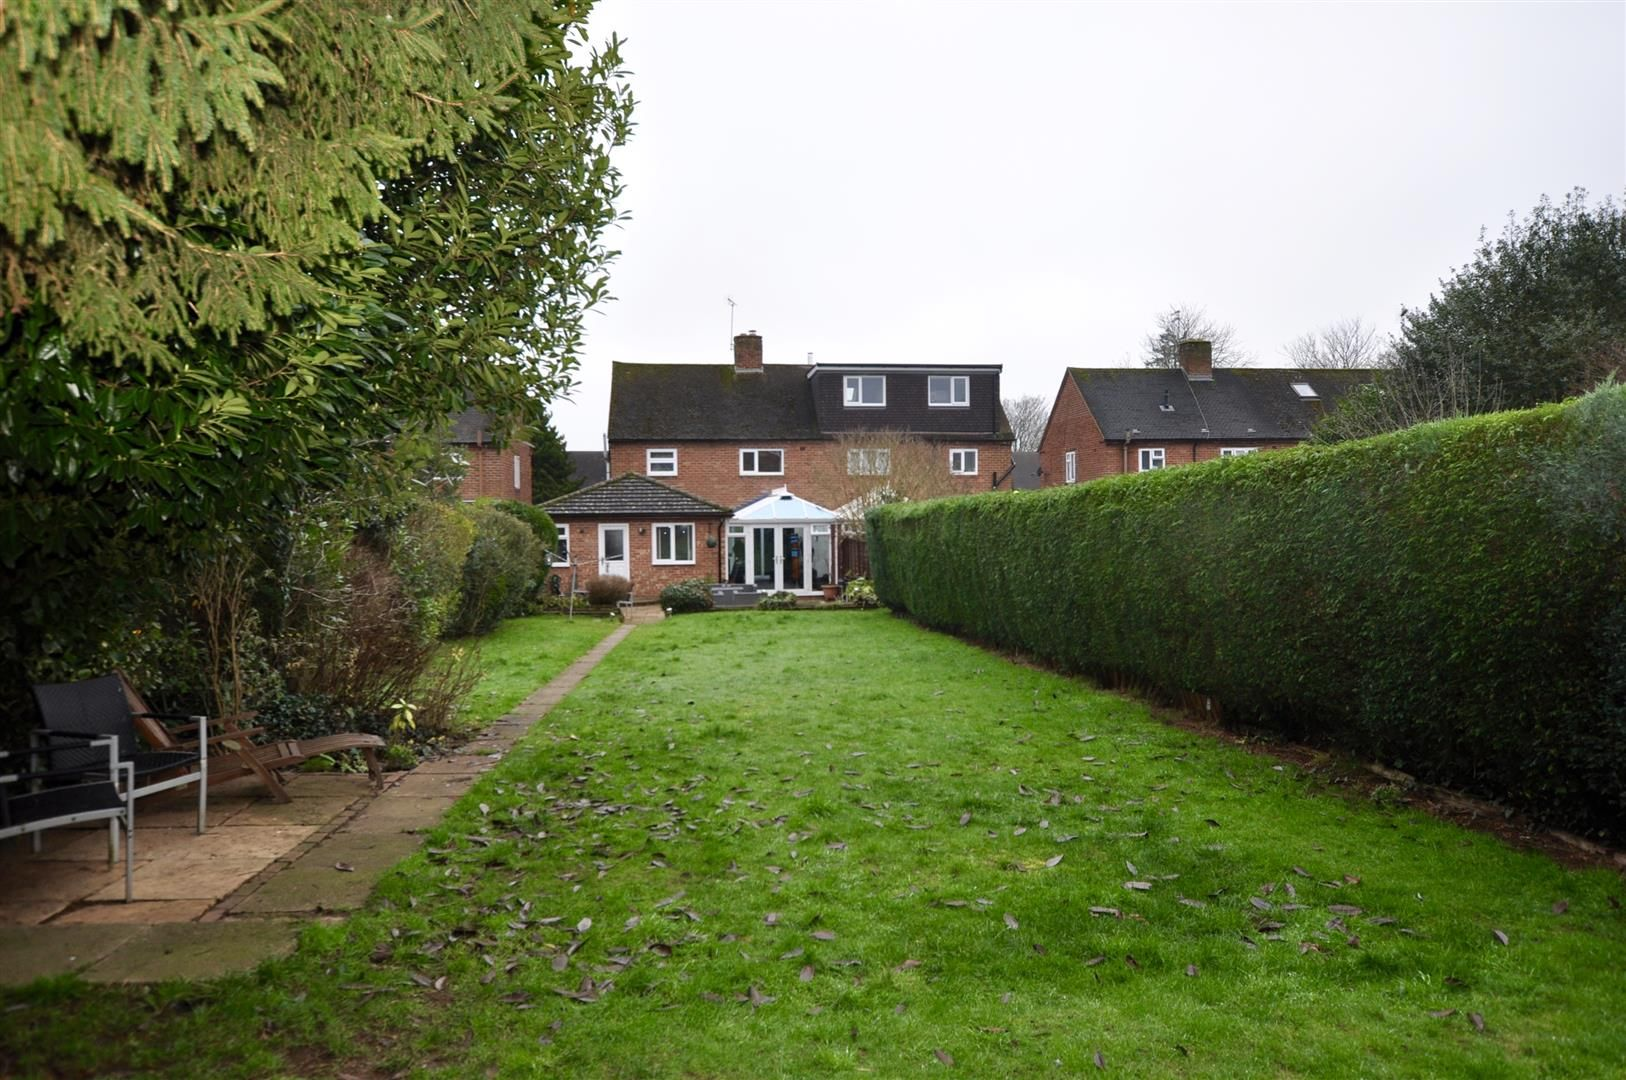 3 bed semi-detached for sale in Hagley 19